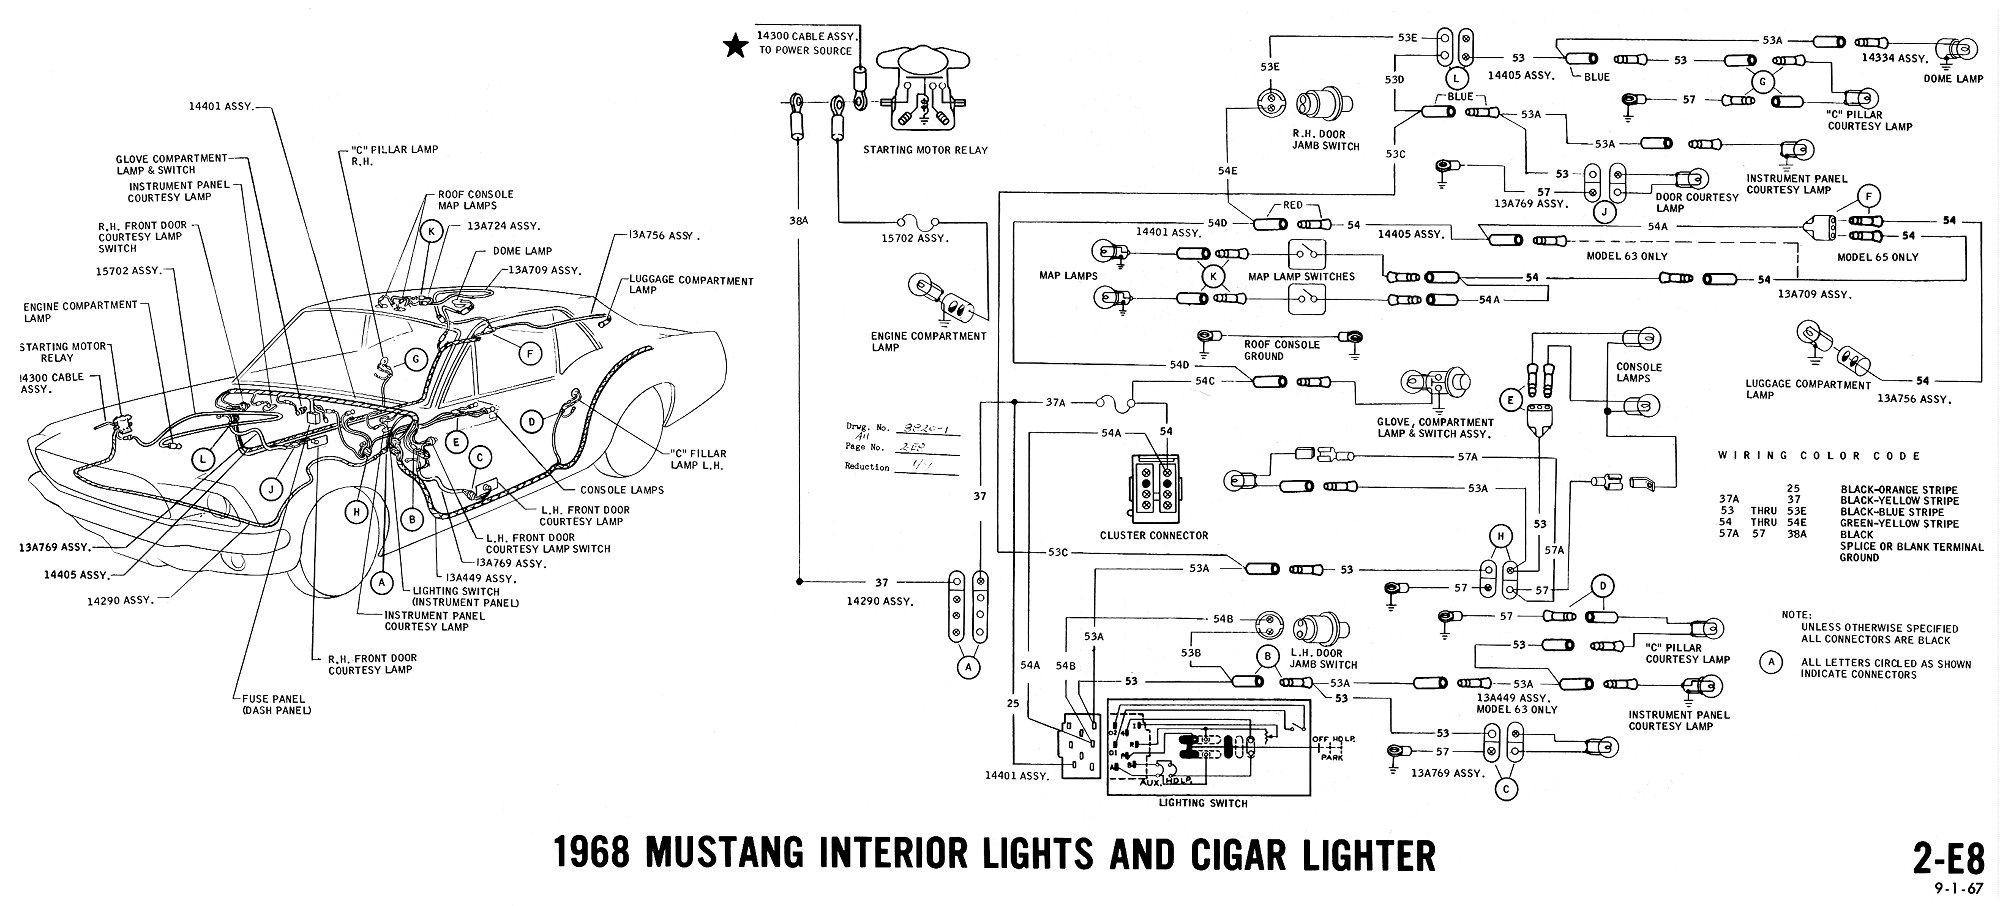 1968 mustang wiring diagrams evolving software rh peterfranza com mustang wiring diagram fender mustang wiring diagram fender